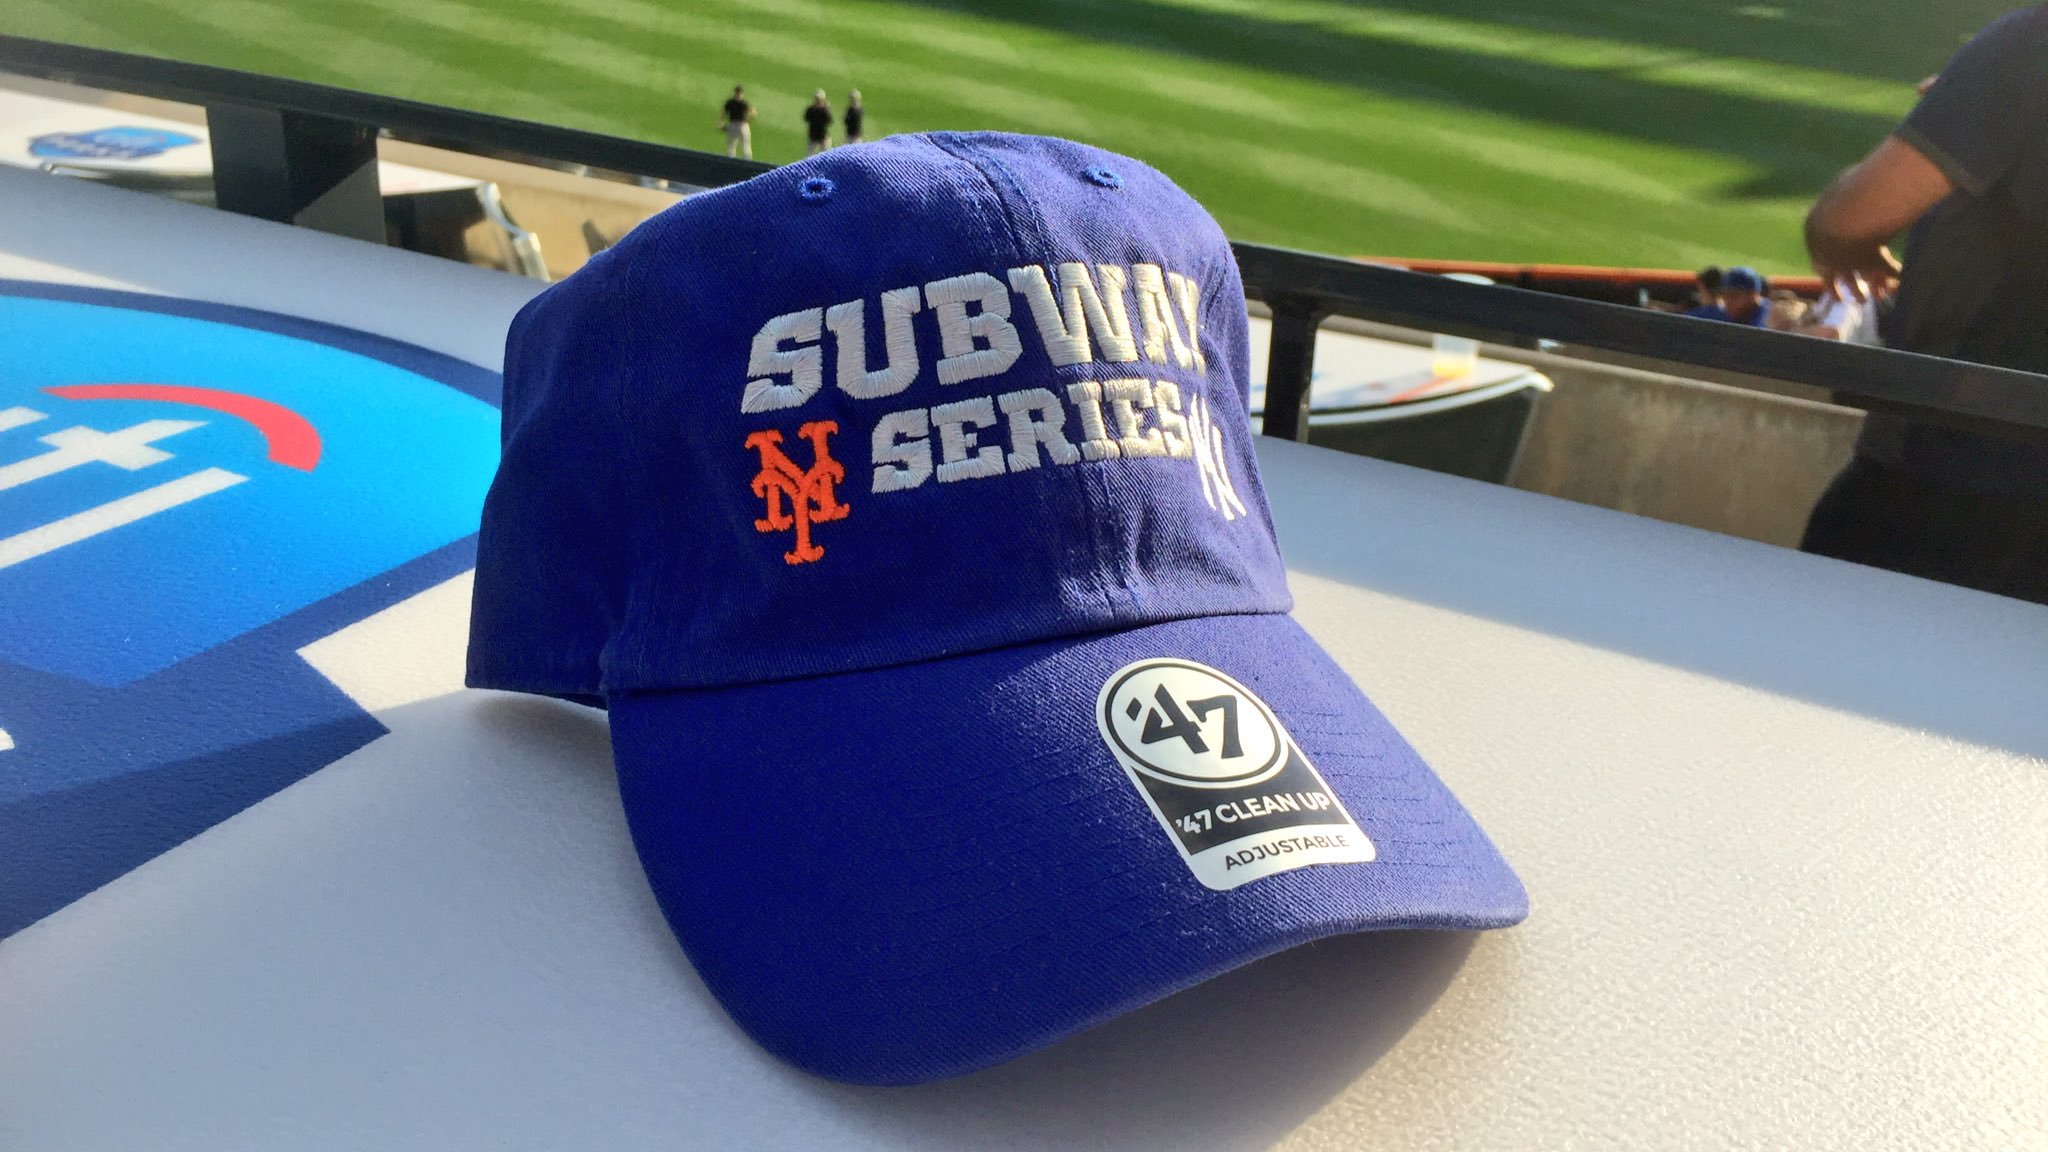 RT and follow @MetsTeamStore to enter to win this #SubwaySeries hat! ��������  Rules: https://t.co/bEcNcFxRhc https://t.co/0otDm9YcK3